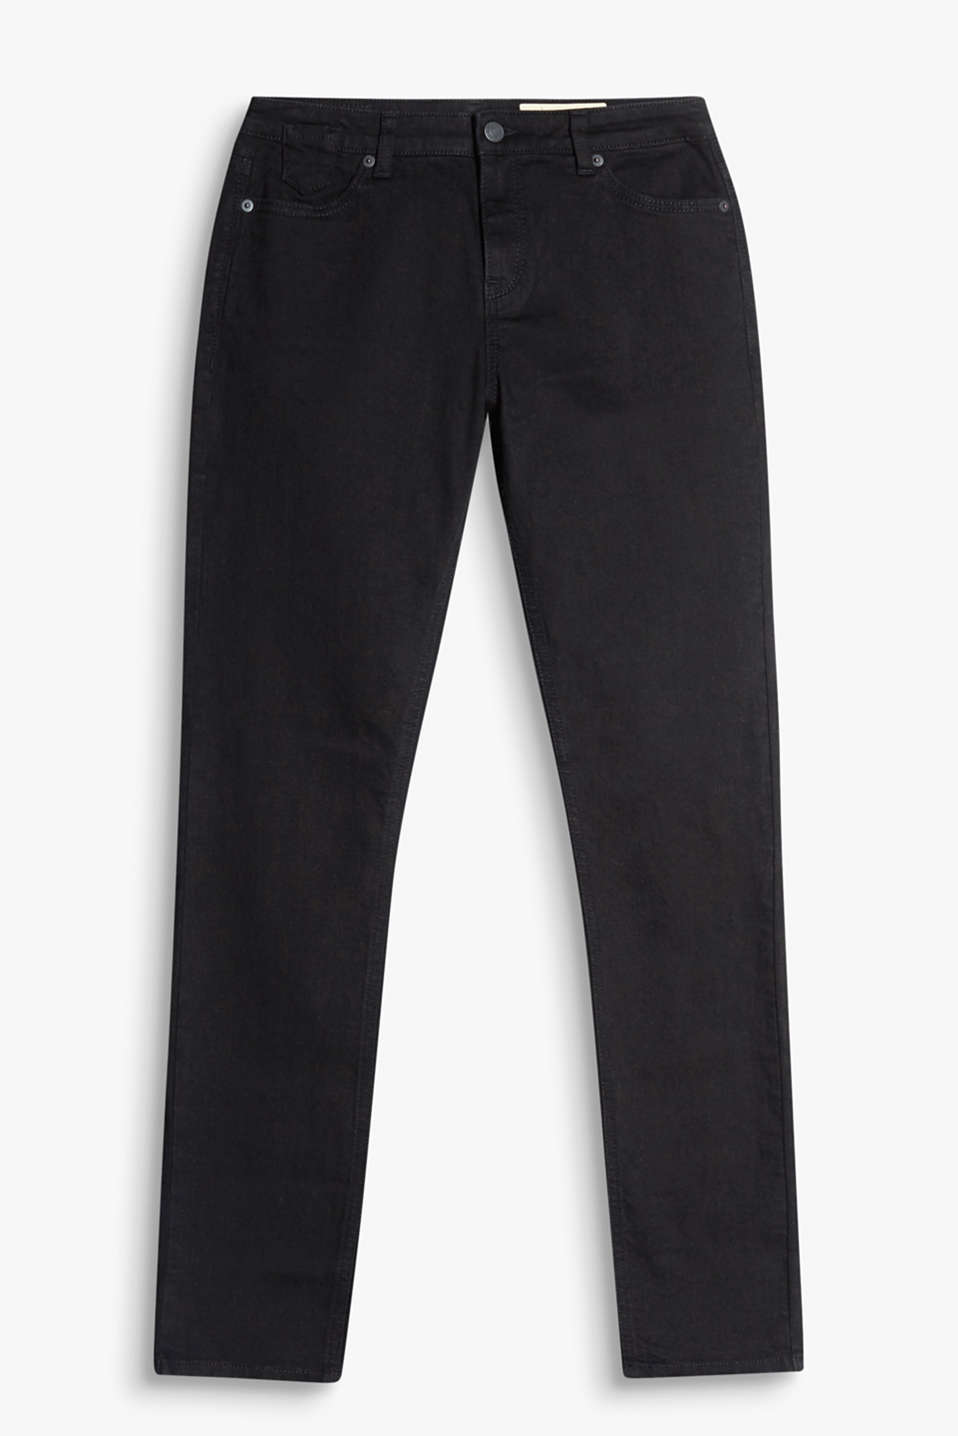 Jet black jeans with added stretch and five pockets